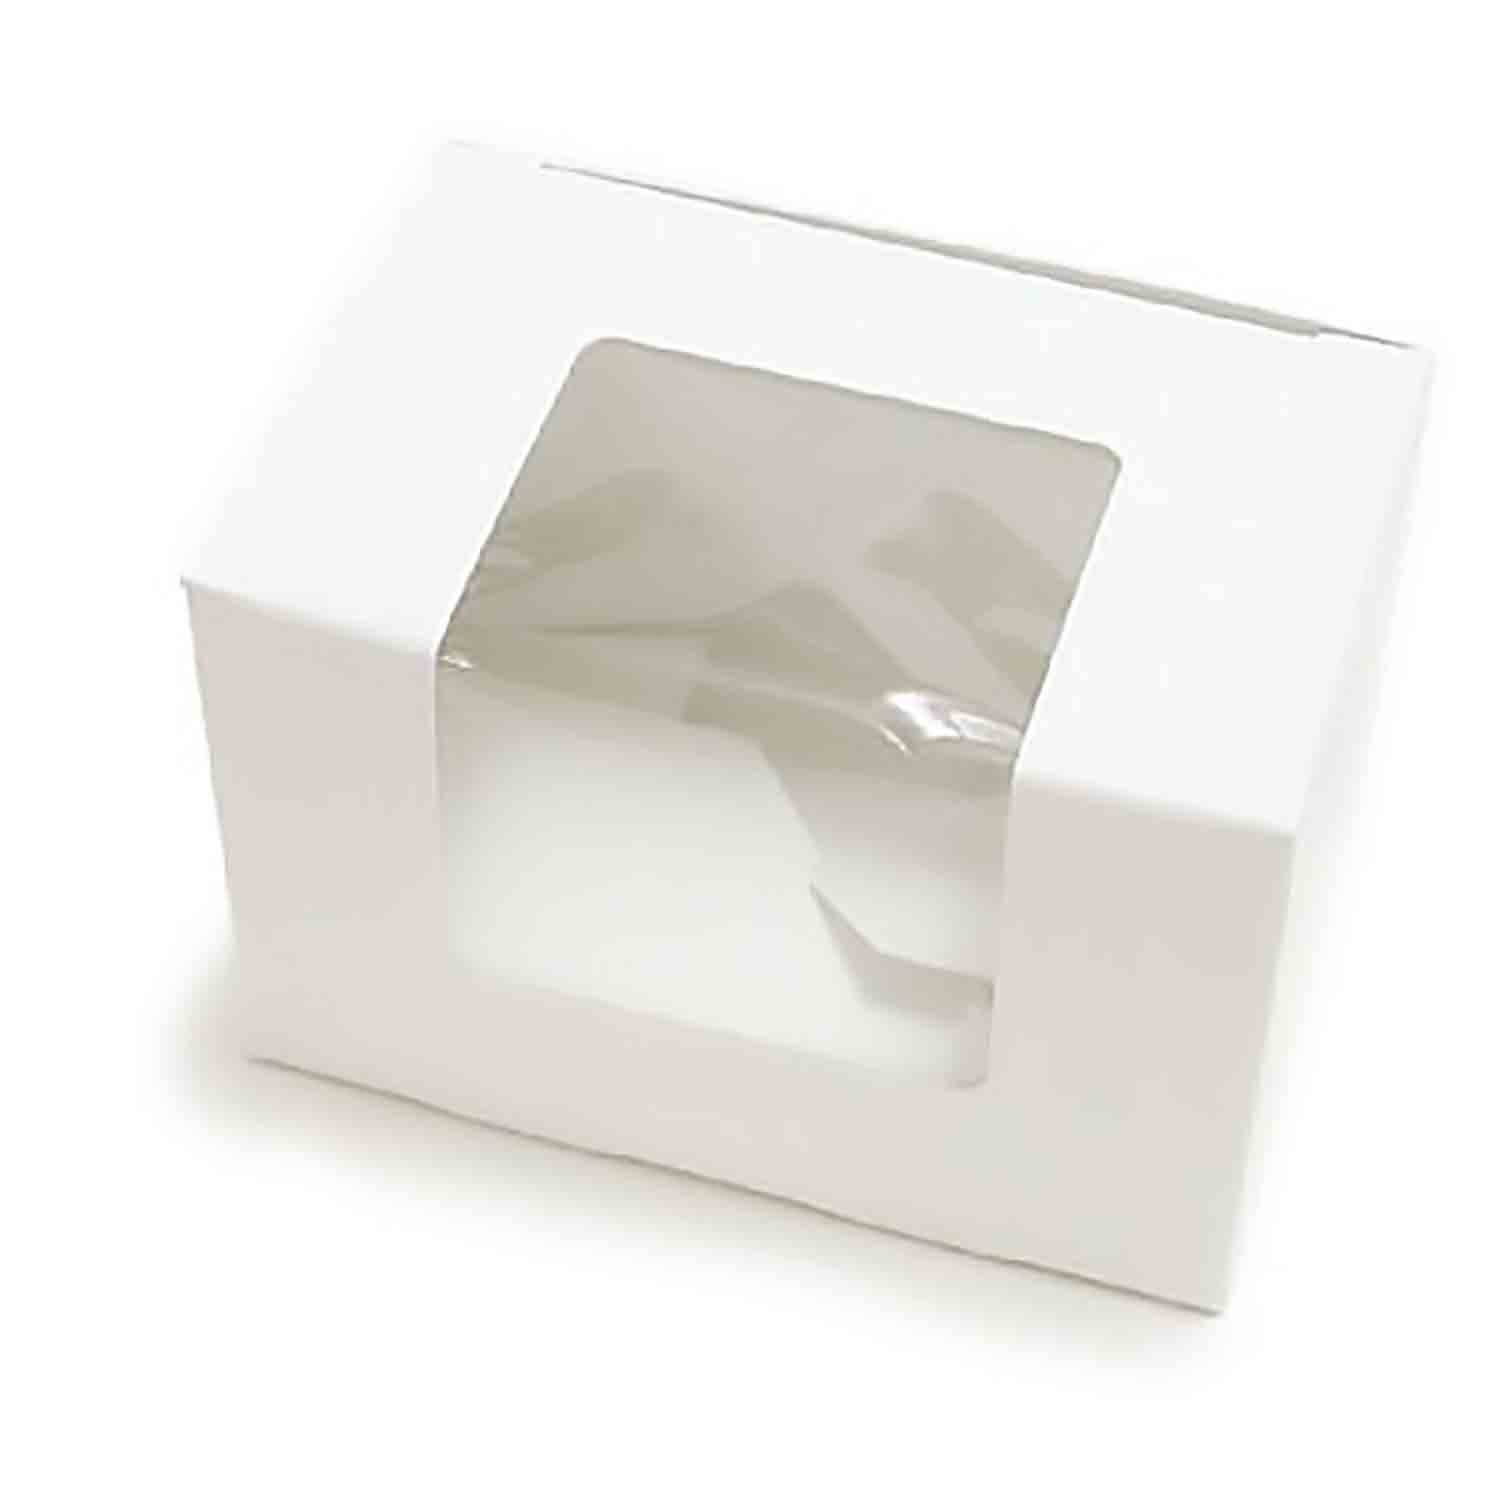 2 lb. White Egg Candy Box with Window